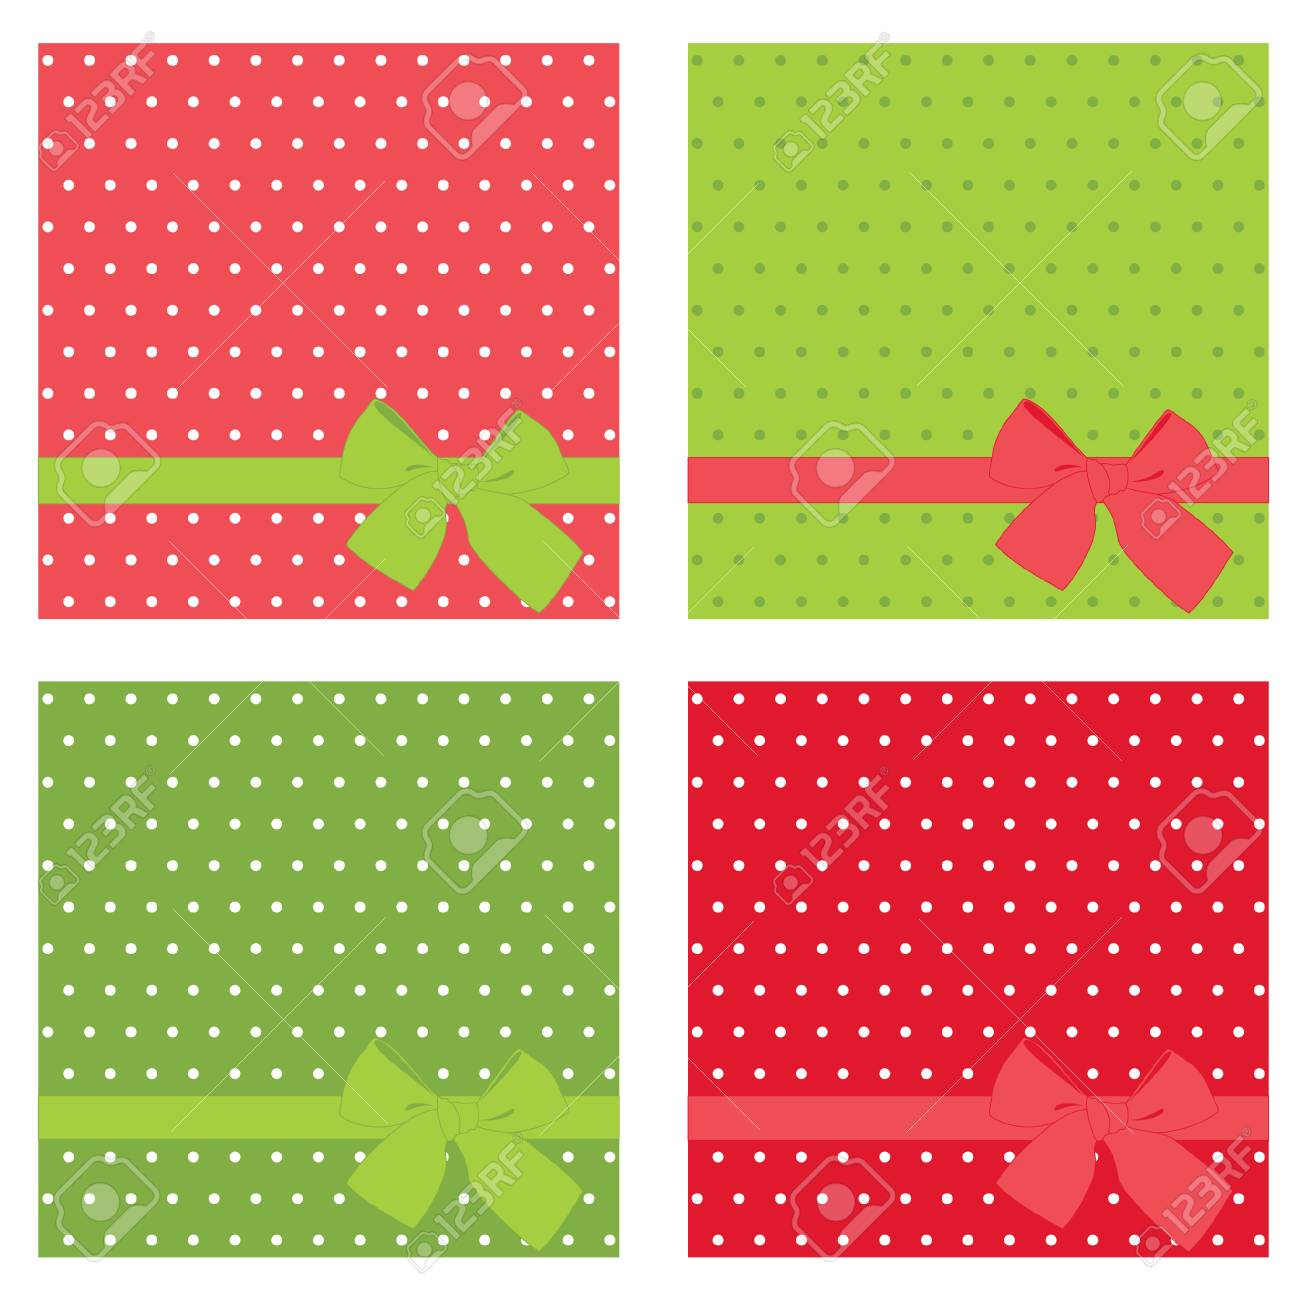 background pattern Stock Vector - 7541046